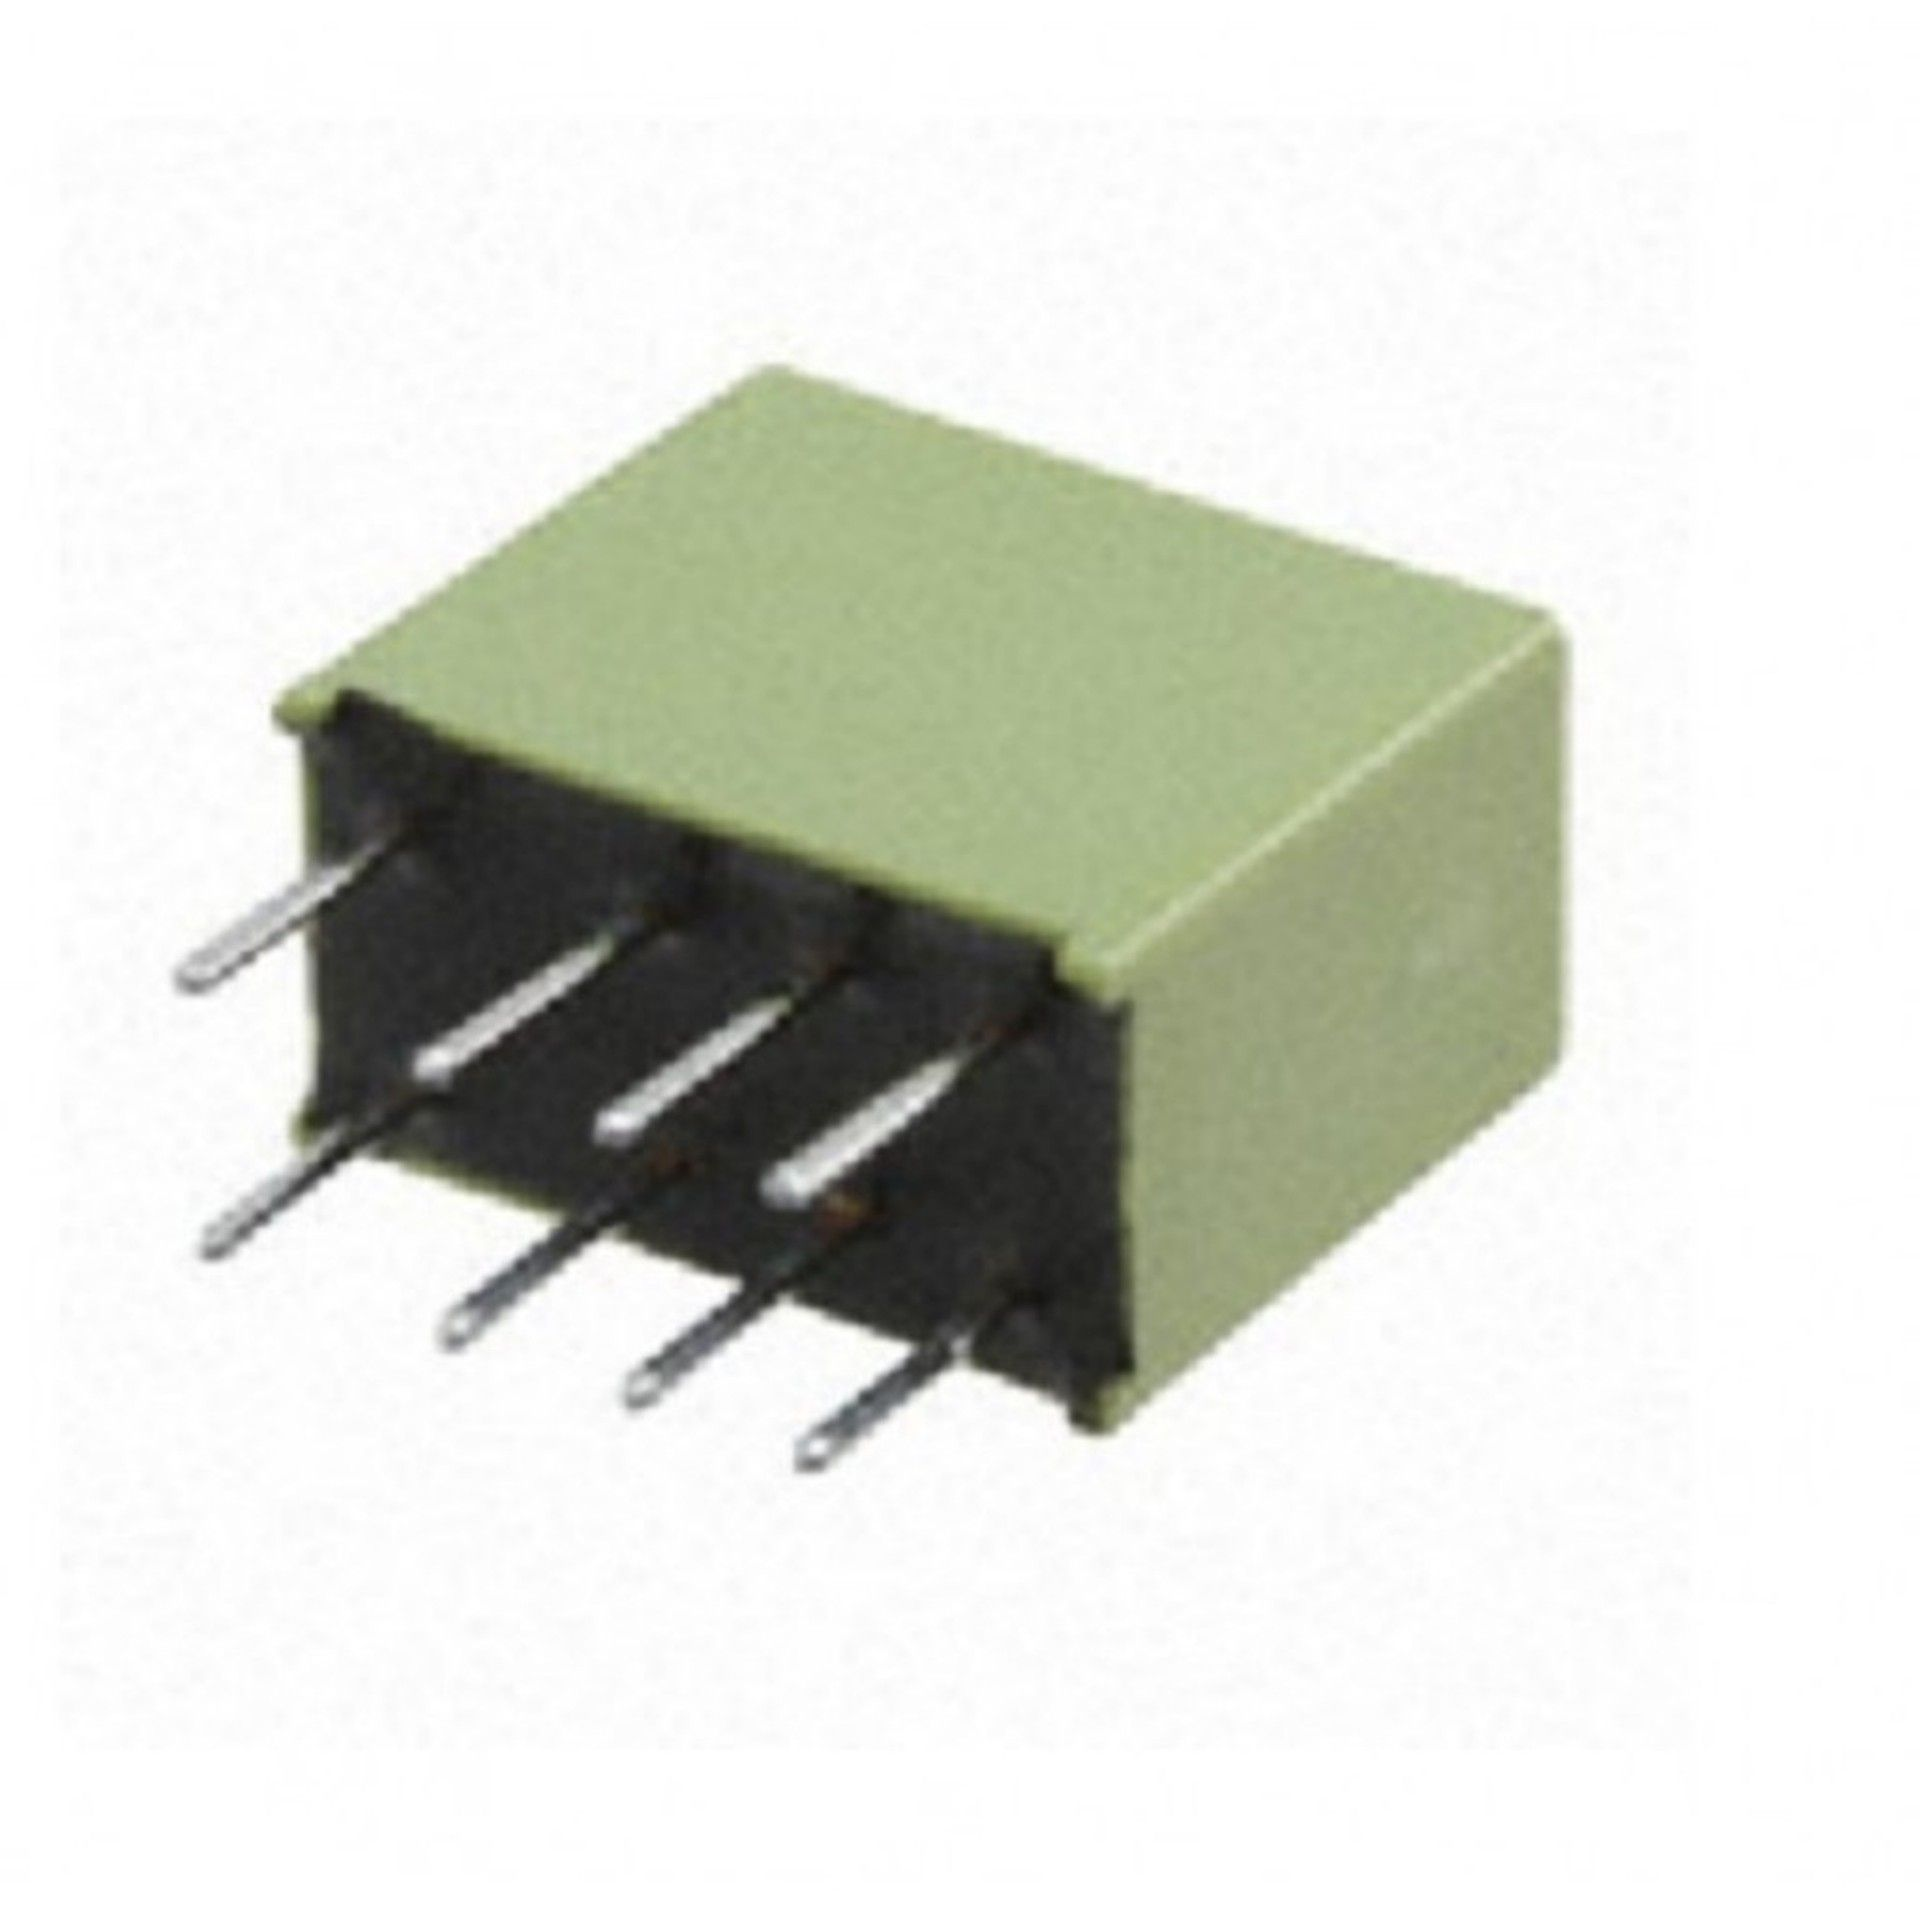 Suppliers of best quality products and 1A 24VDC DPDT NON-LATCHING ...